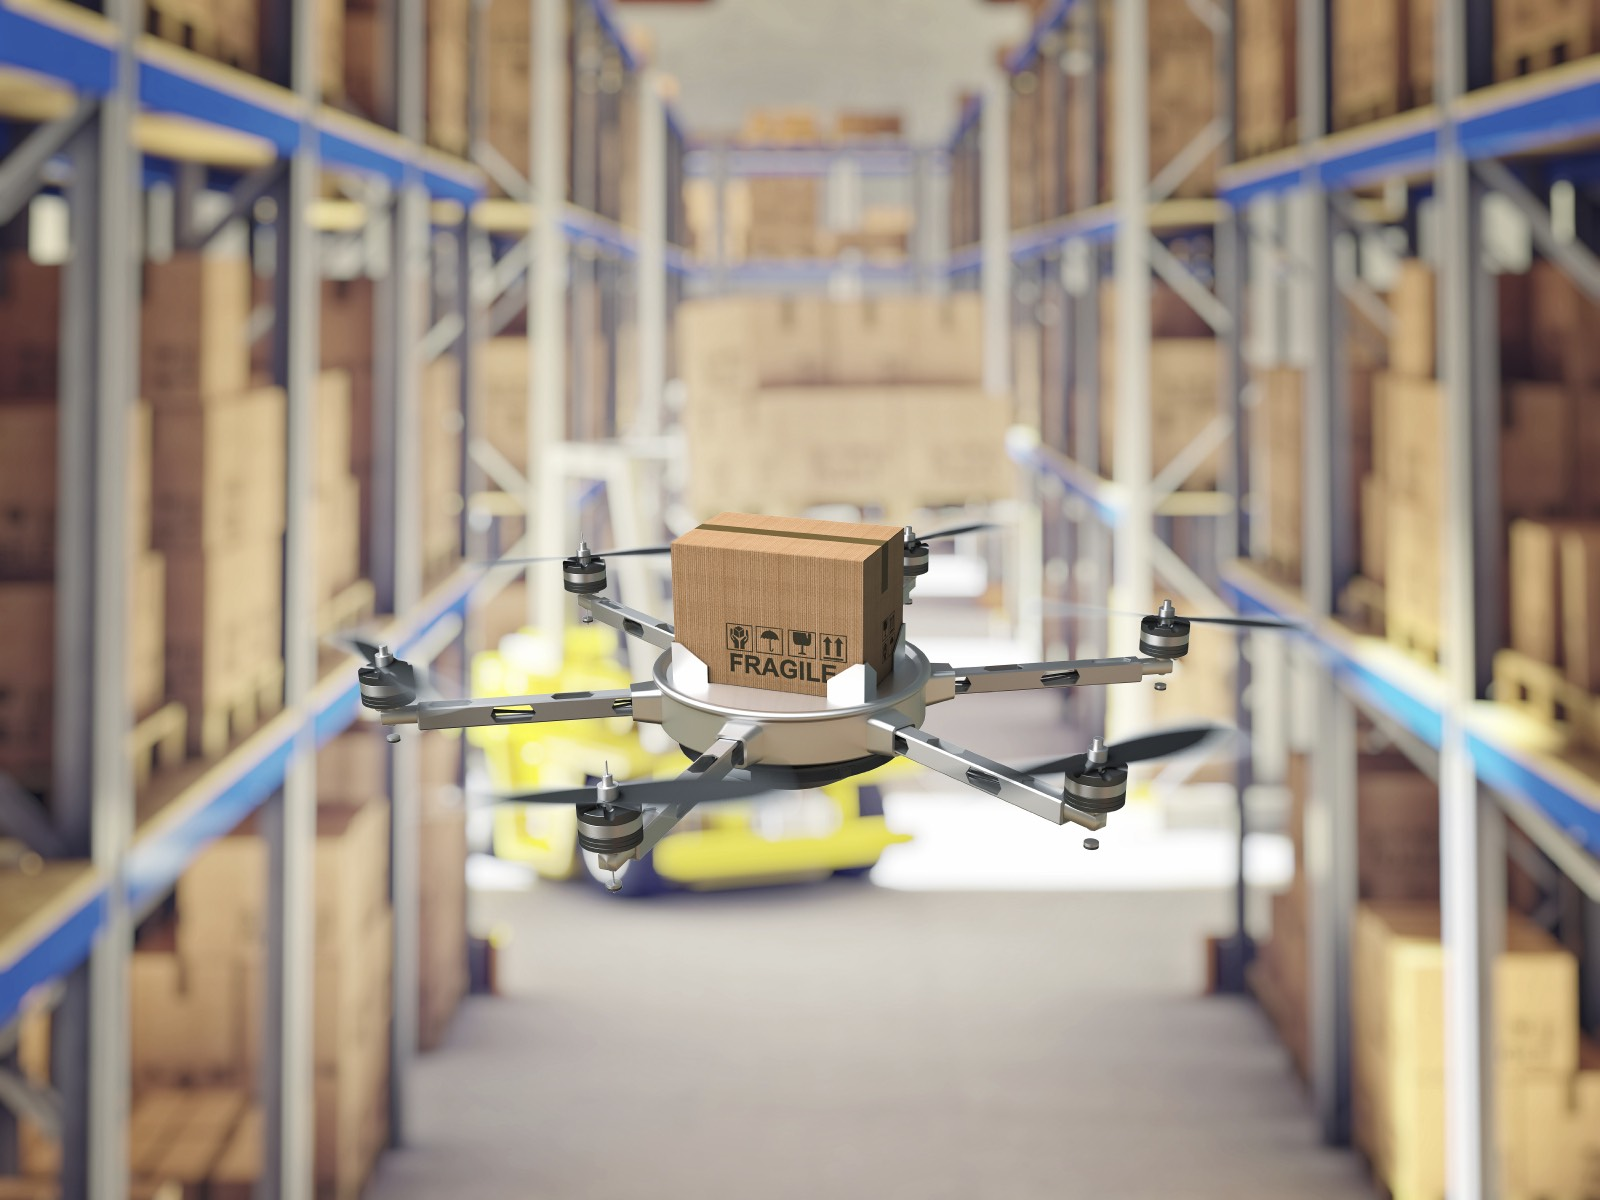 image of robotic drone in warehouse